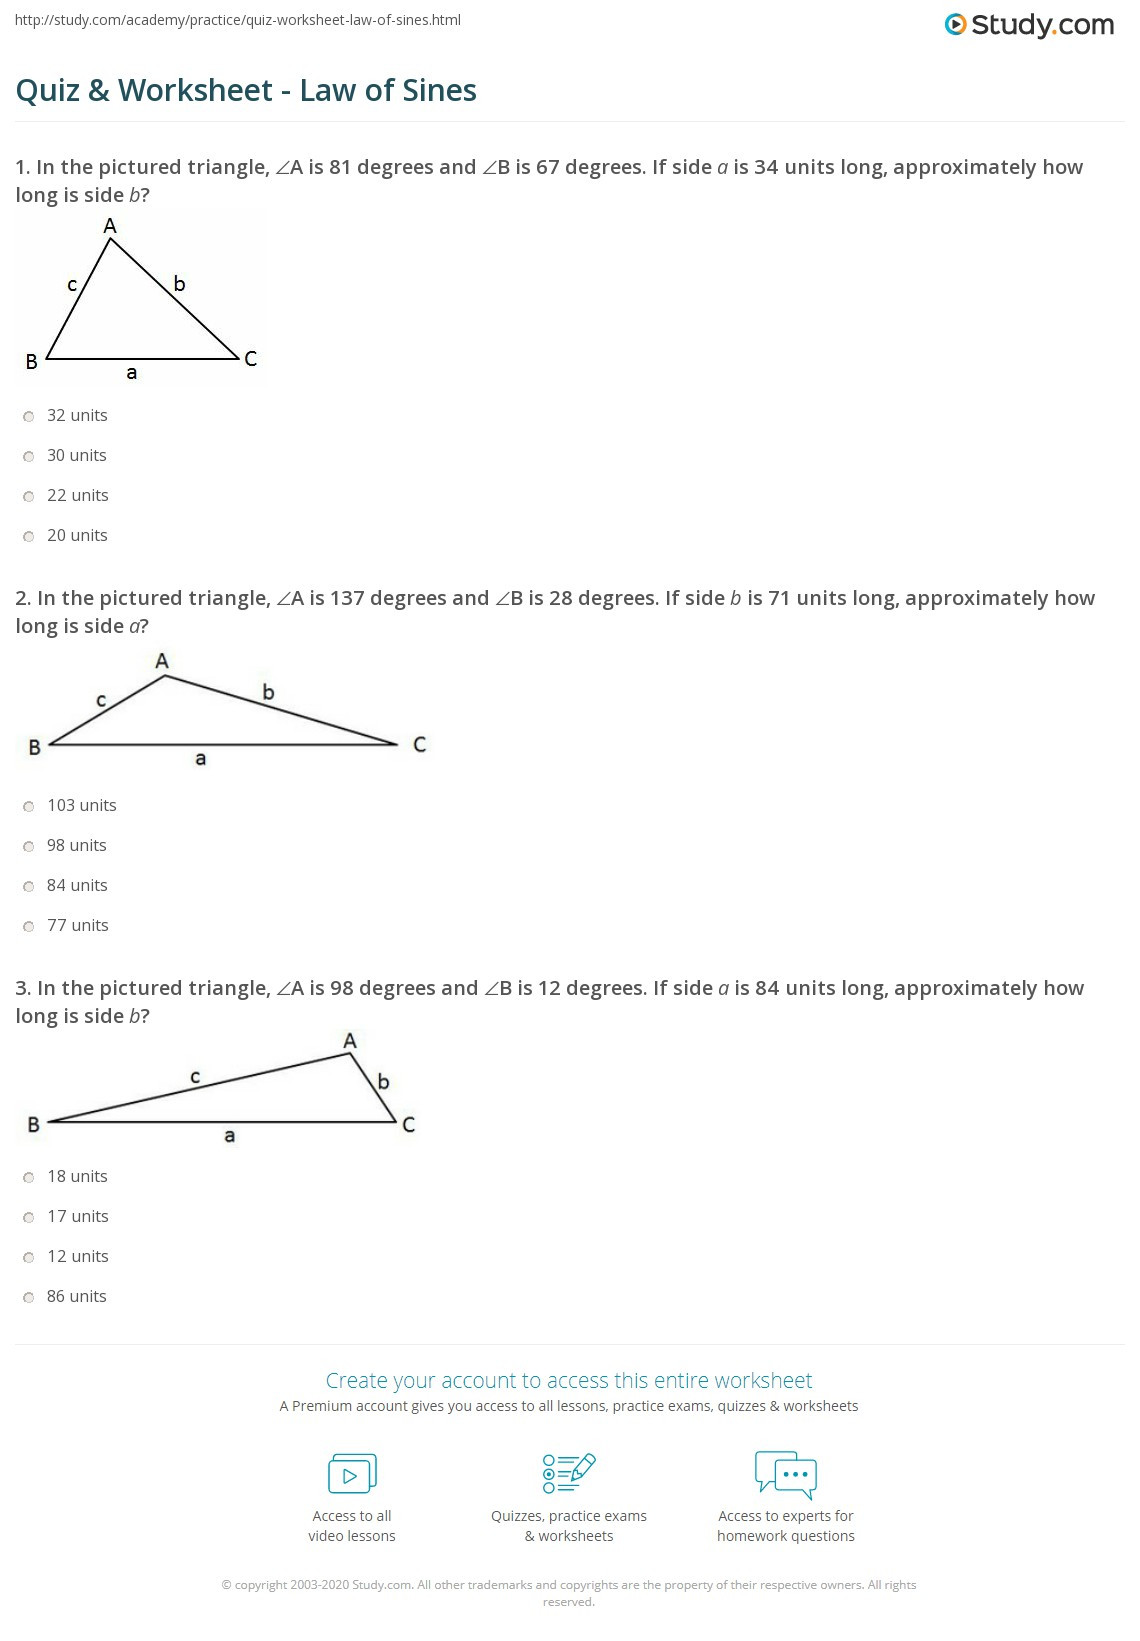 30 Law Of Sines Worksheet Answers